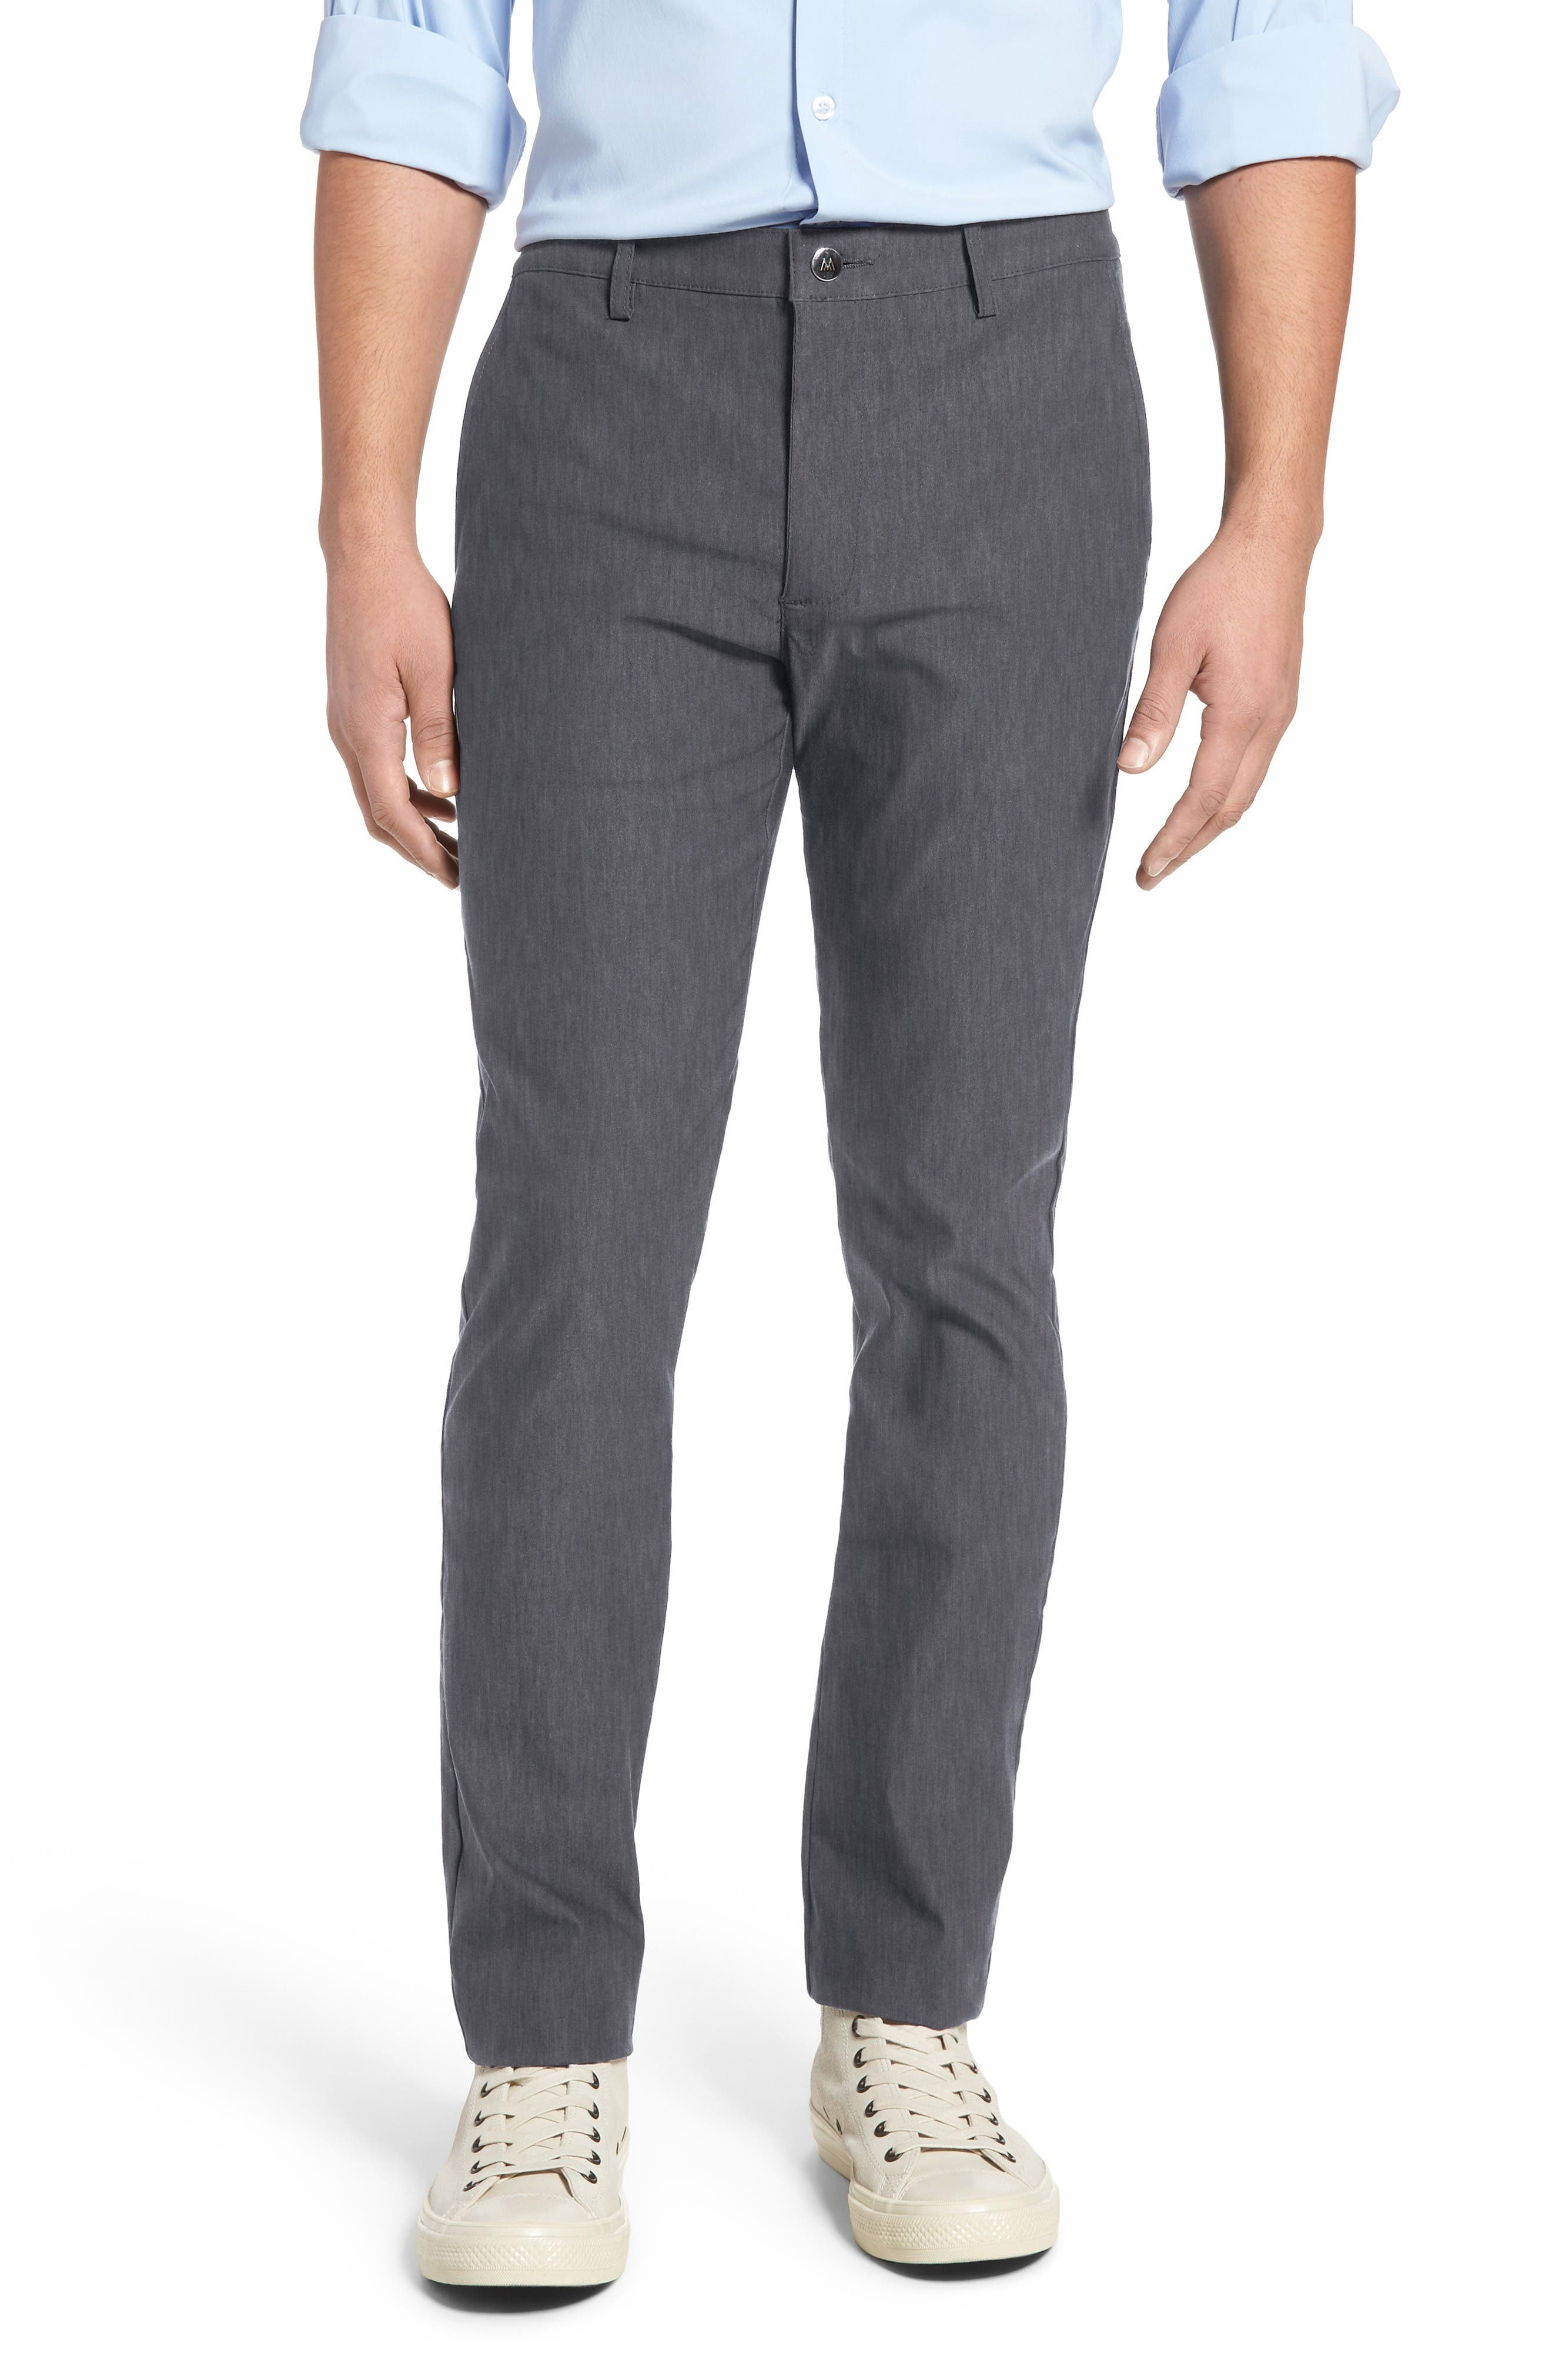 Vice President Trim Fit Performance Chinos,                         Main,                         color, Grey